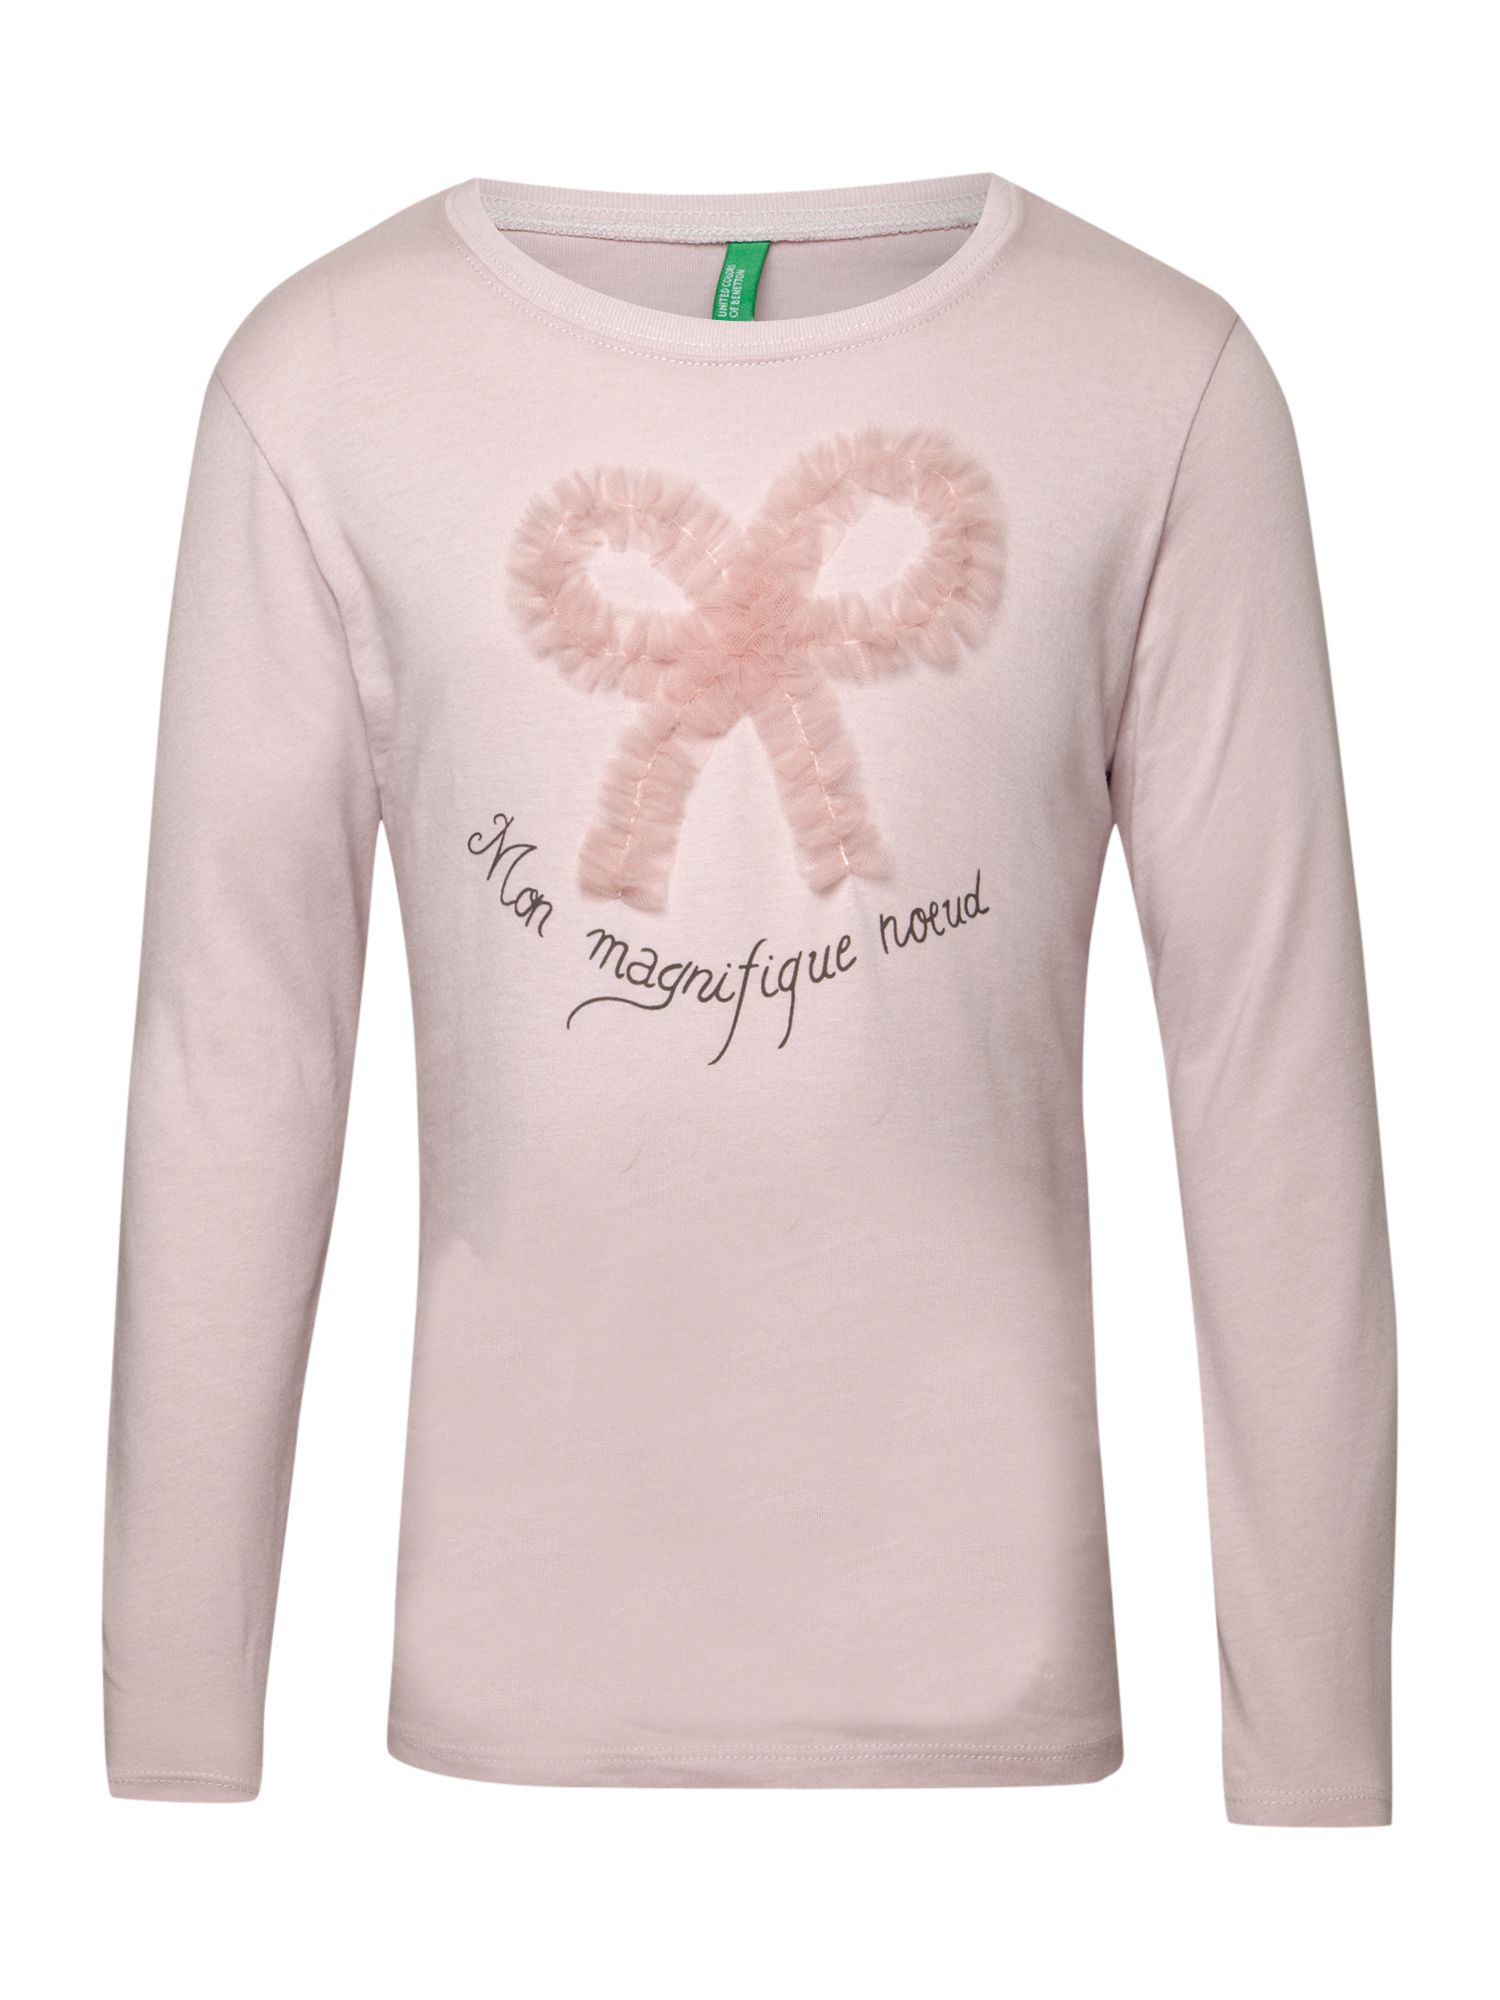 Benetton Long-sleeved printed t-shirt, Pink product image